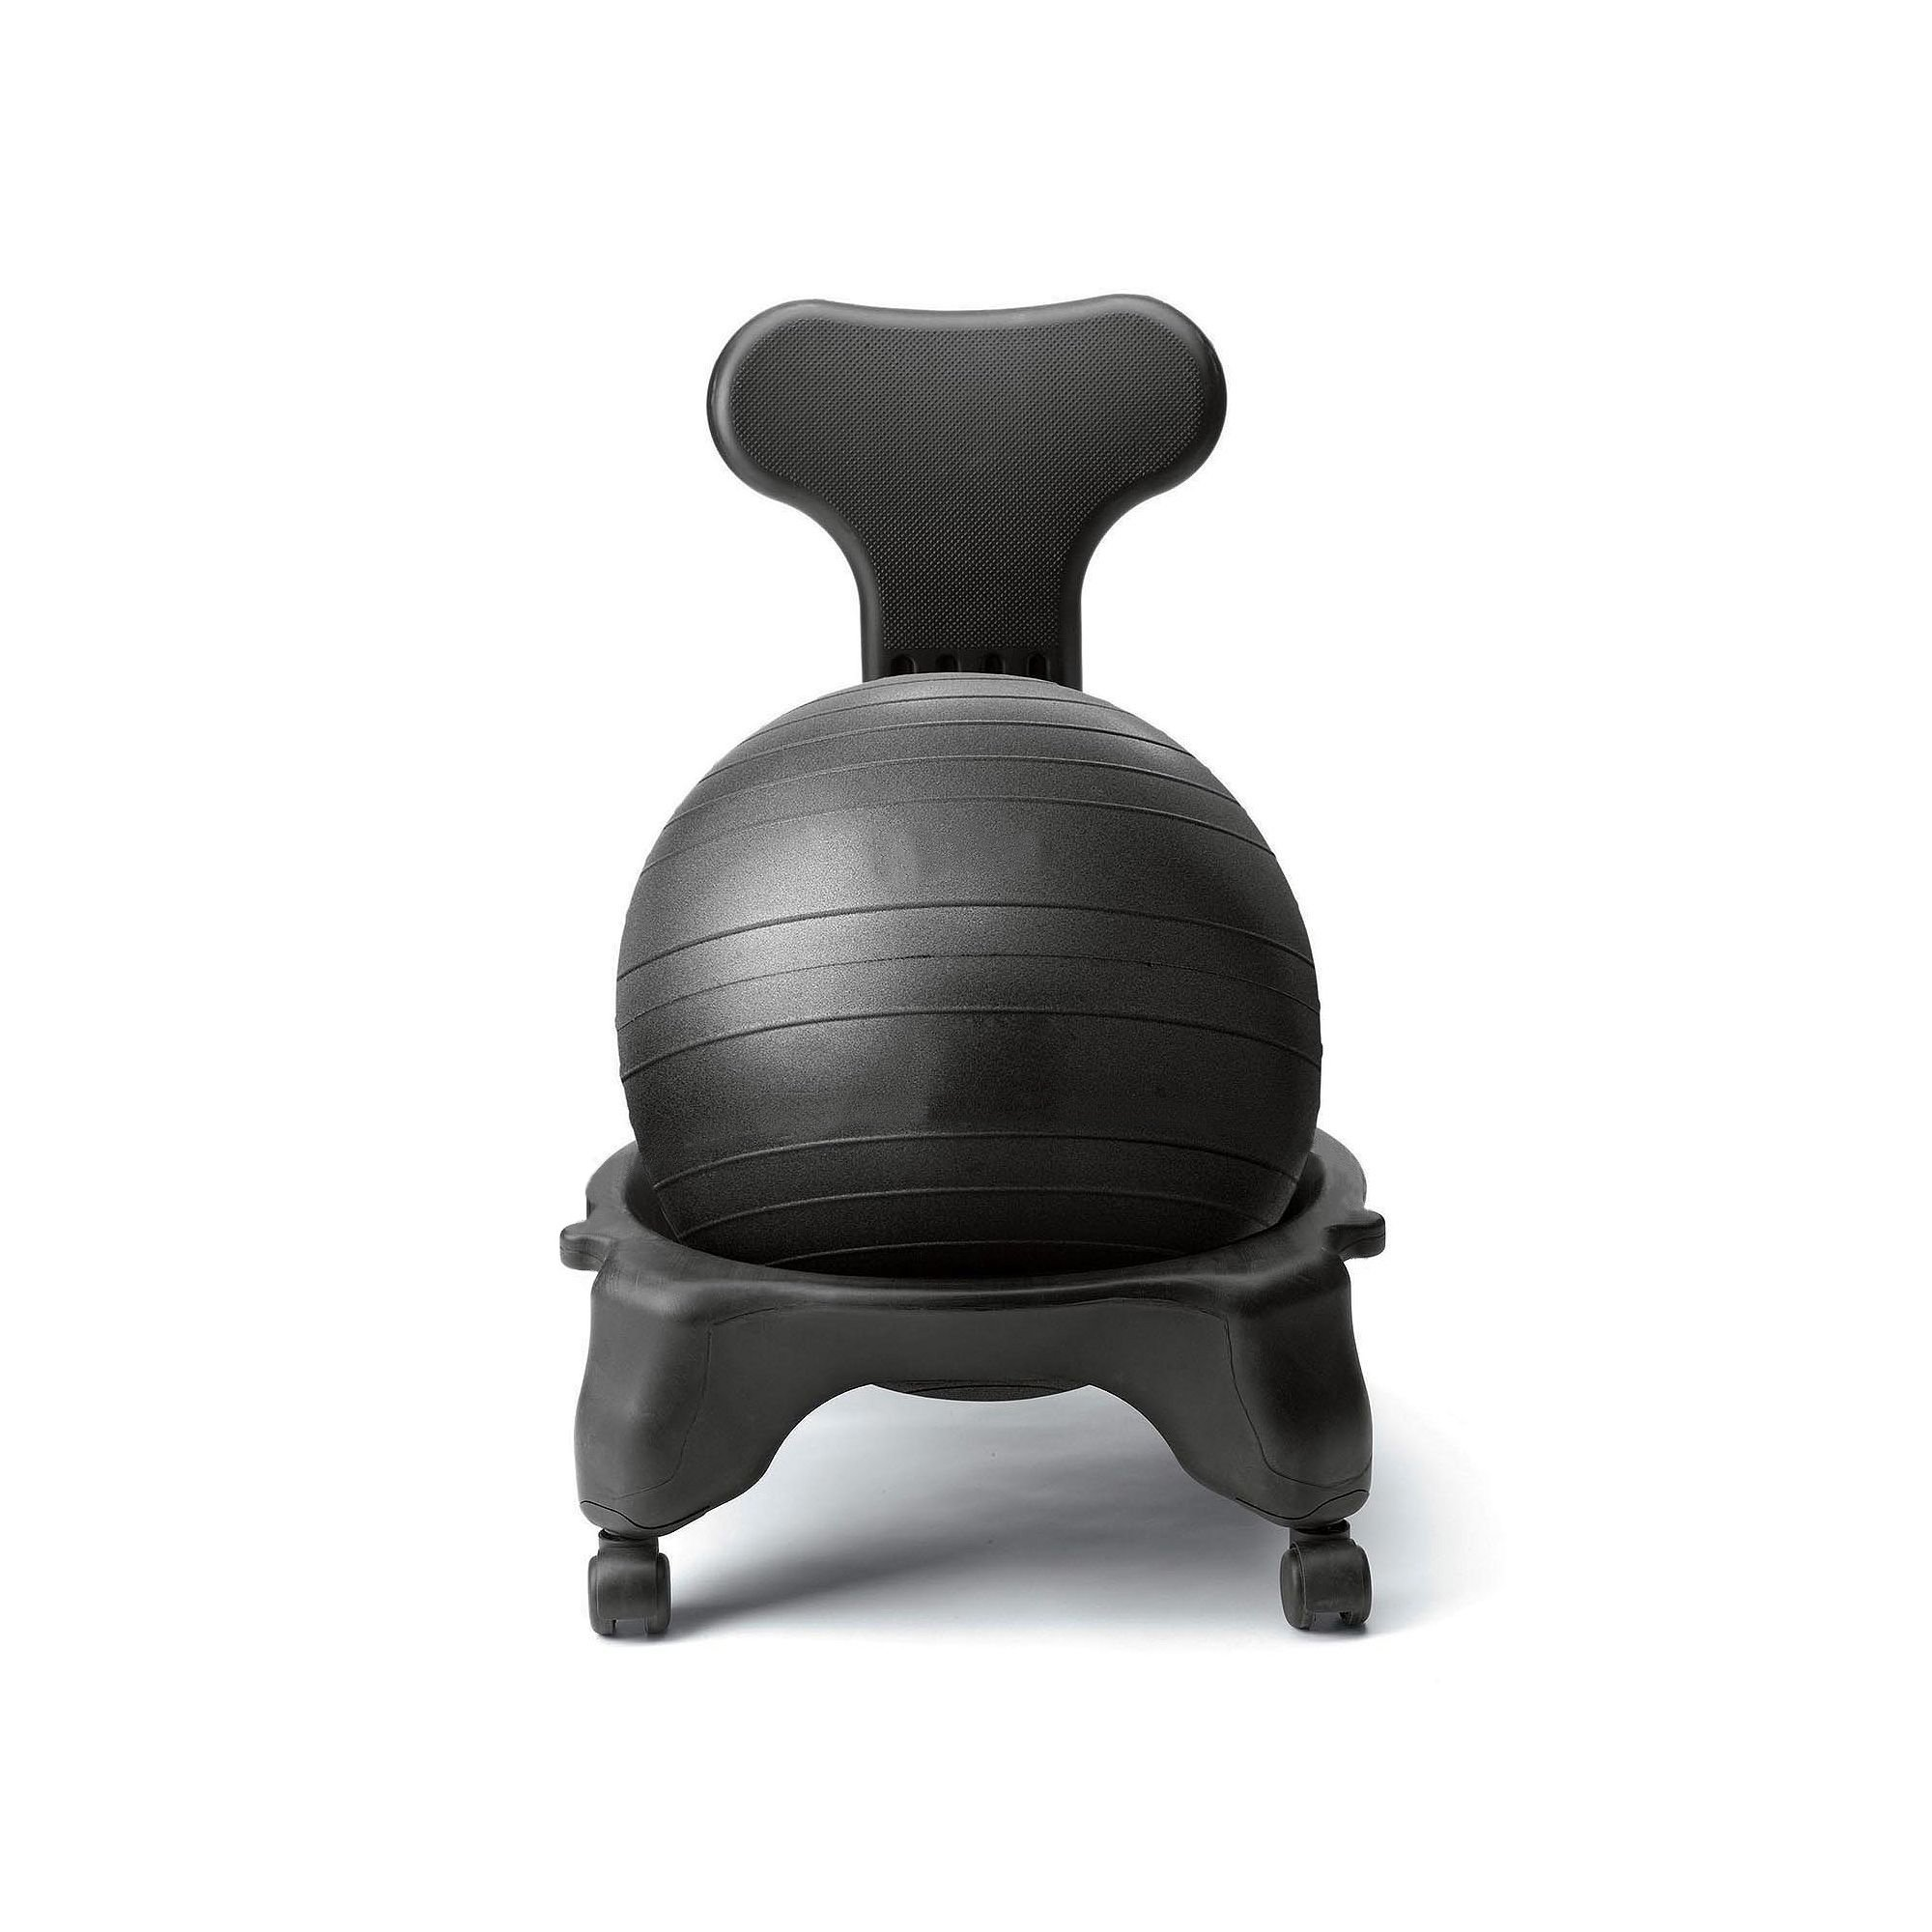 1UP Fit-Chair Balance Ball Chair Home & Office - Pump and Exercise Guide